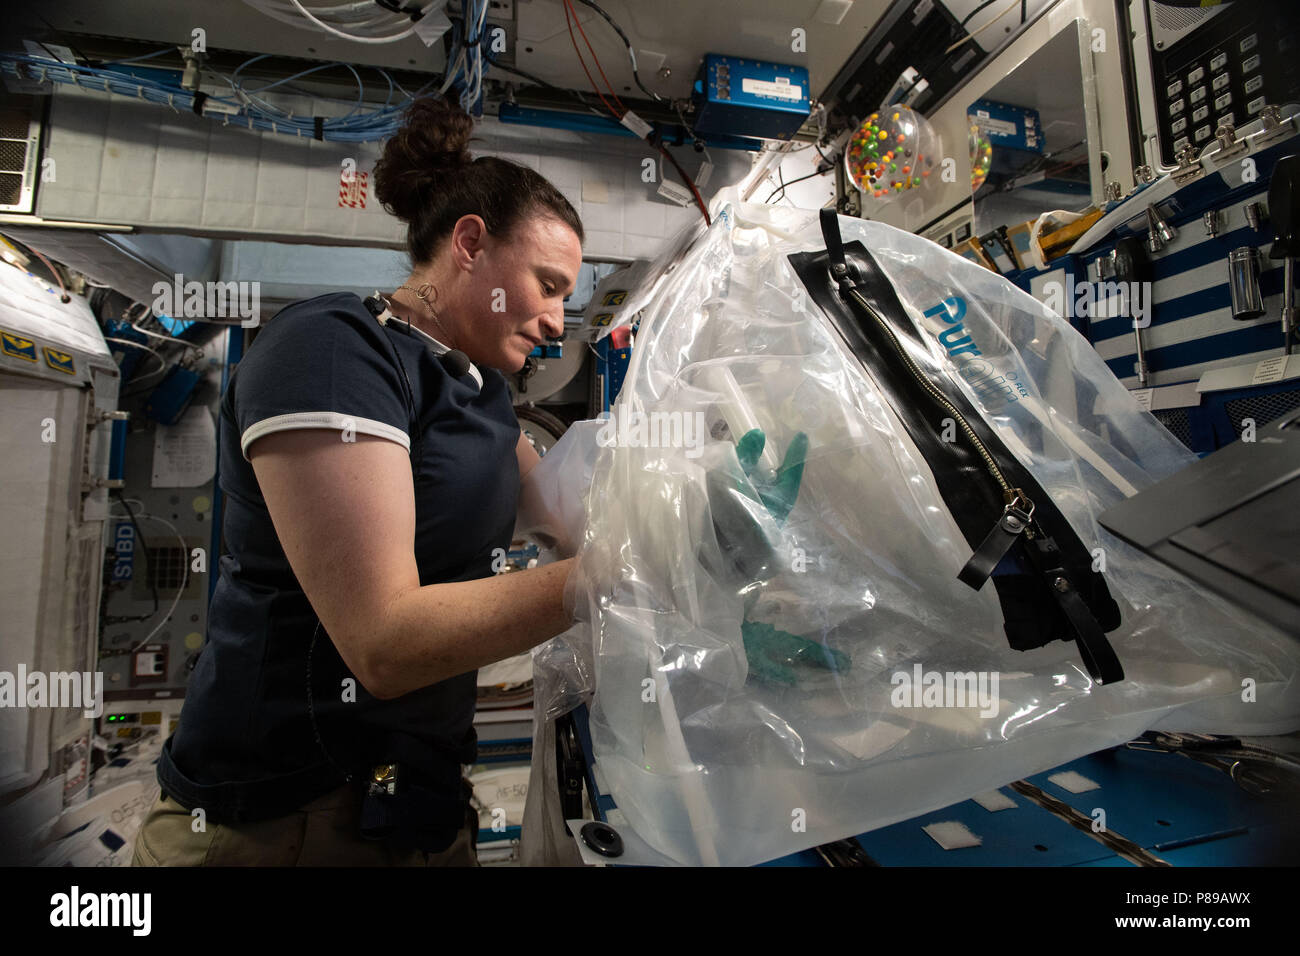 Expedition 57 crew members Serena Aunon-Chancellor of NASA works on the Microgravity Investigation of Cement Solidification experiment aboard the International Space Station June 26, 2018 in Earth Orbit. - Stock Image